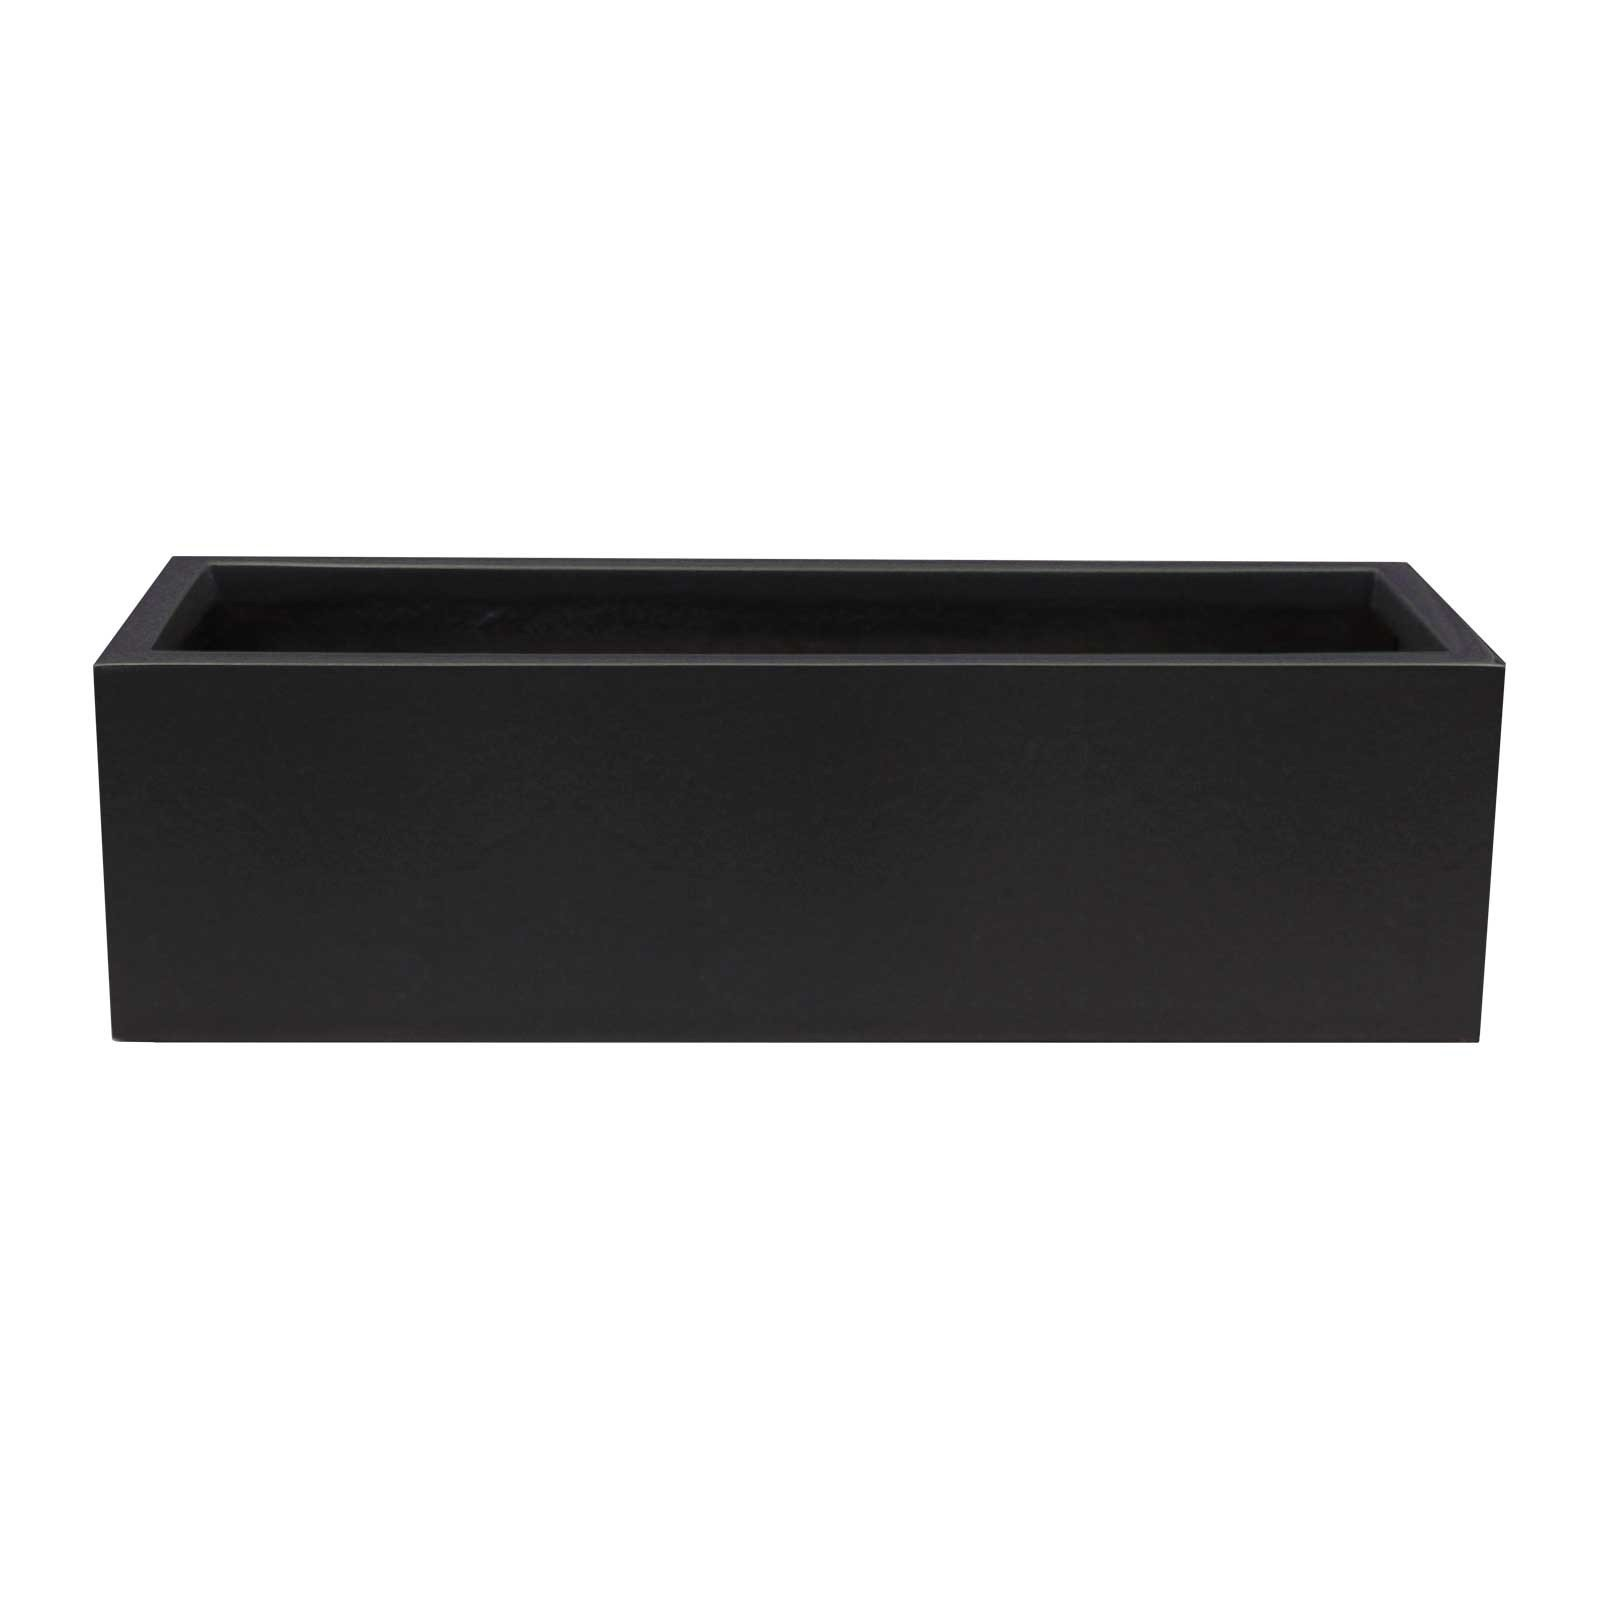 Low Profile Planter Boxes - Fiberglass - 12' Tall, (36'/48' Length; 14'/24' Width) - Kiel & Montserrat by Jay Scotts